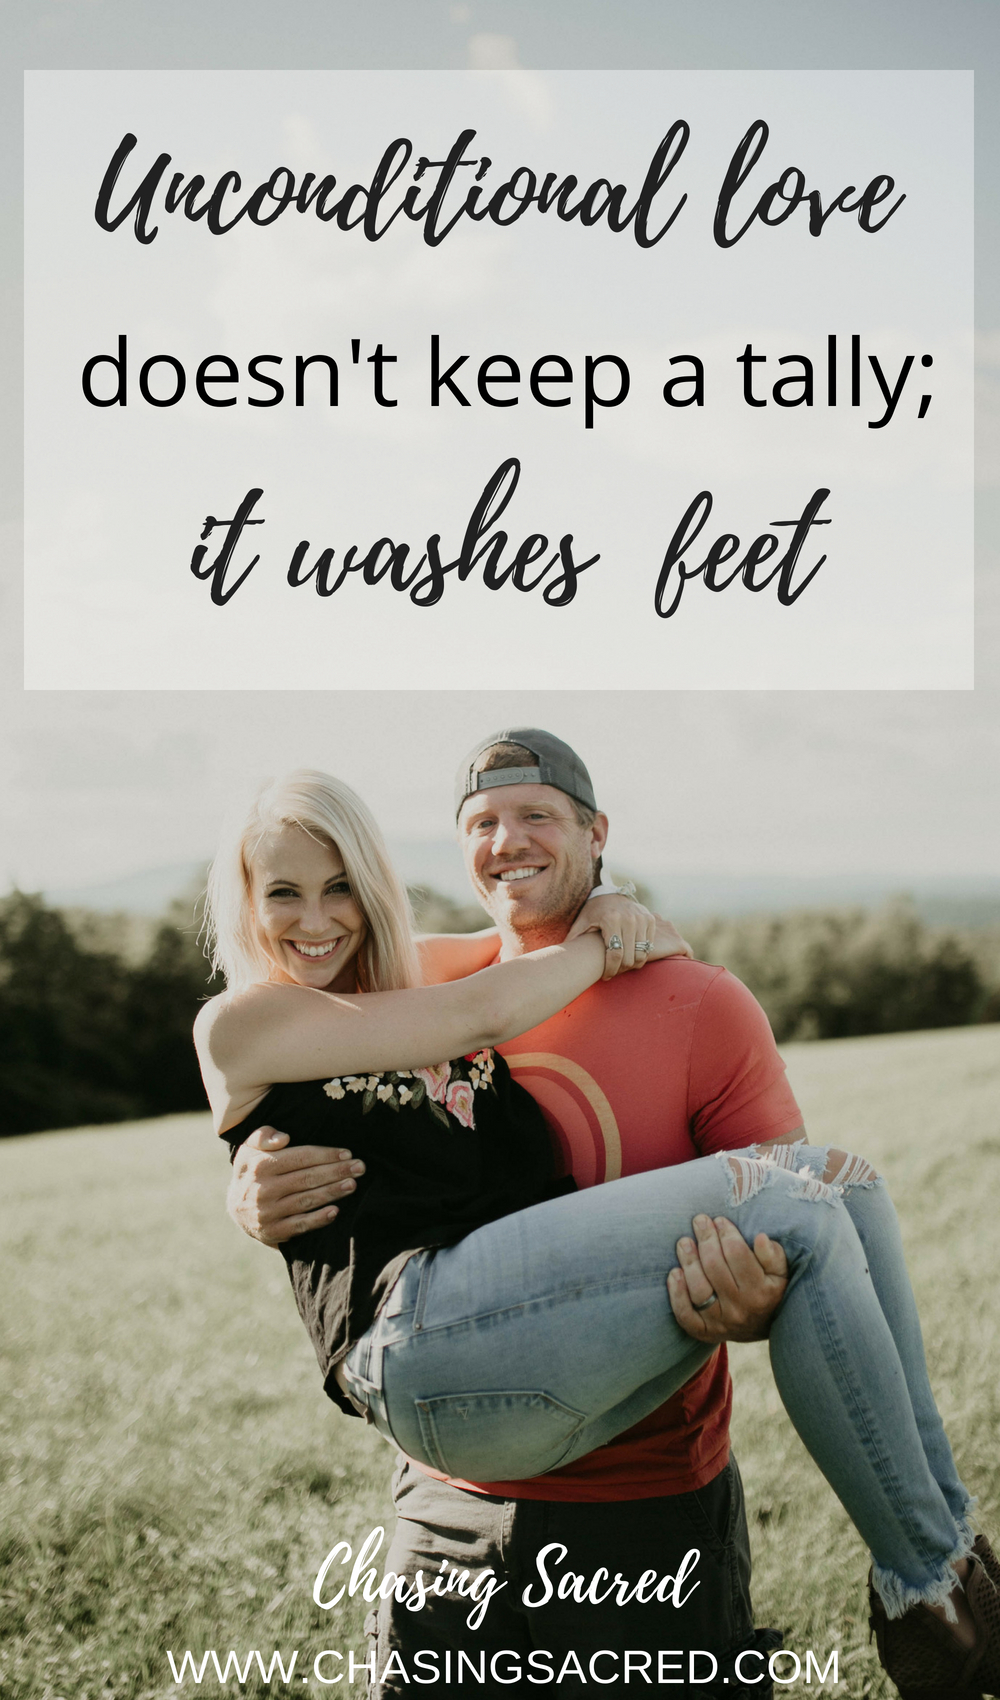 Unconditional love doesn't keep a talley; it washes feet. | Chasing Sacred